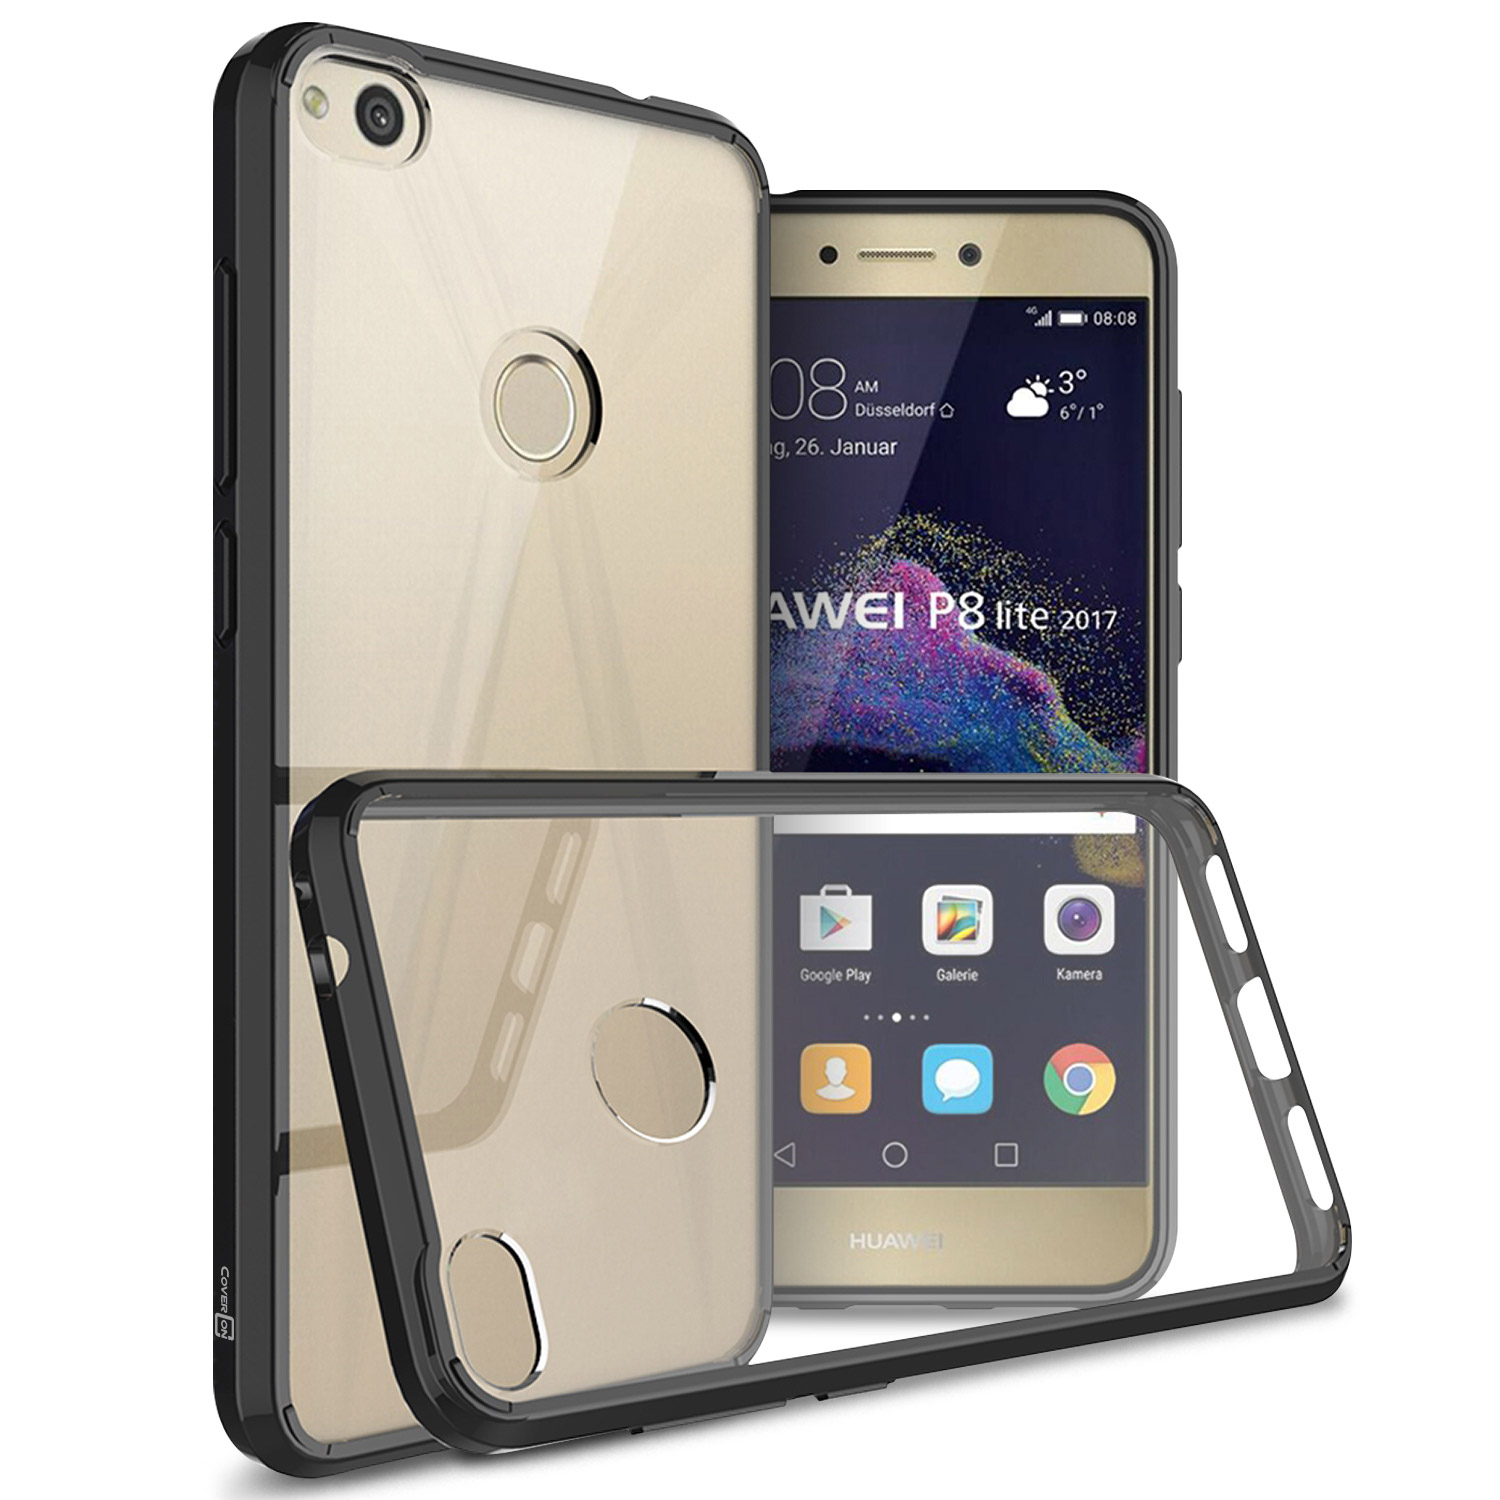 low priced 856c4 f23af Details about Black / Clear Hybrid TPU Bumper Hard Back Cover Case for  Huawei P8 Lite (2017)